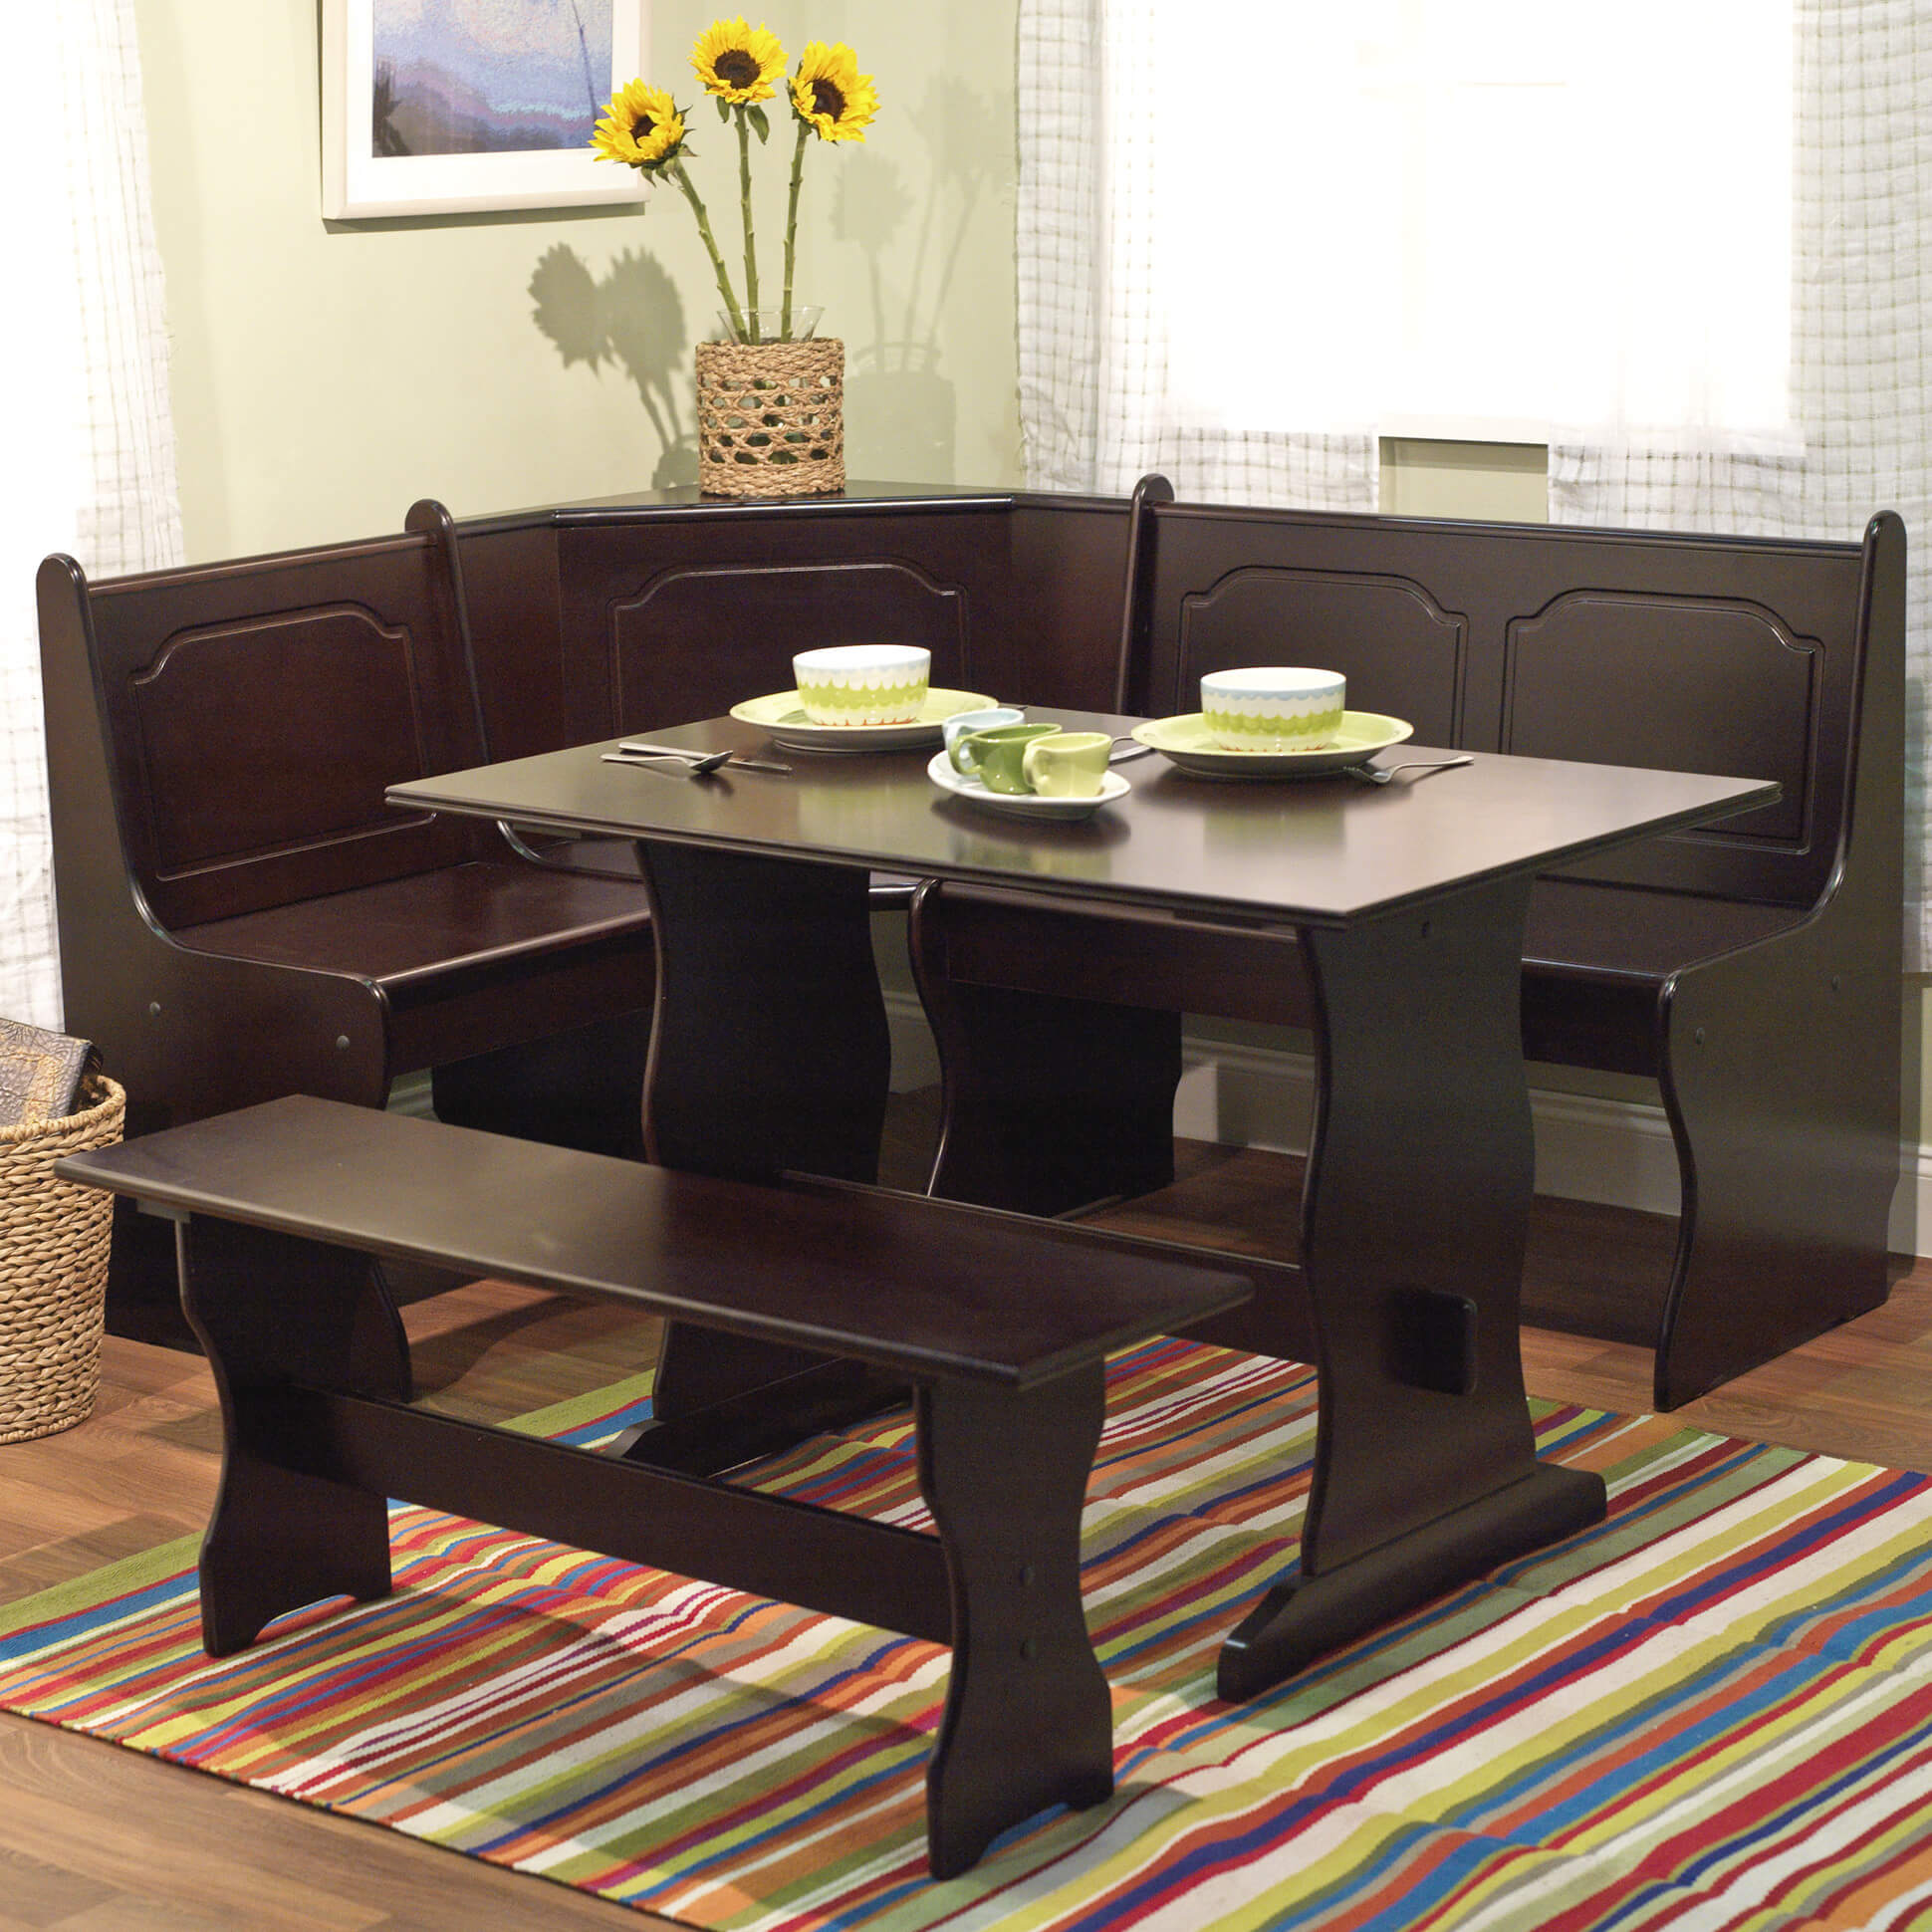 breakfast nook furniture sets kitchen tables sets 2 TMS Breakfast Nook